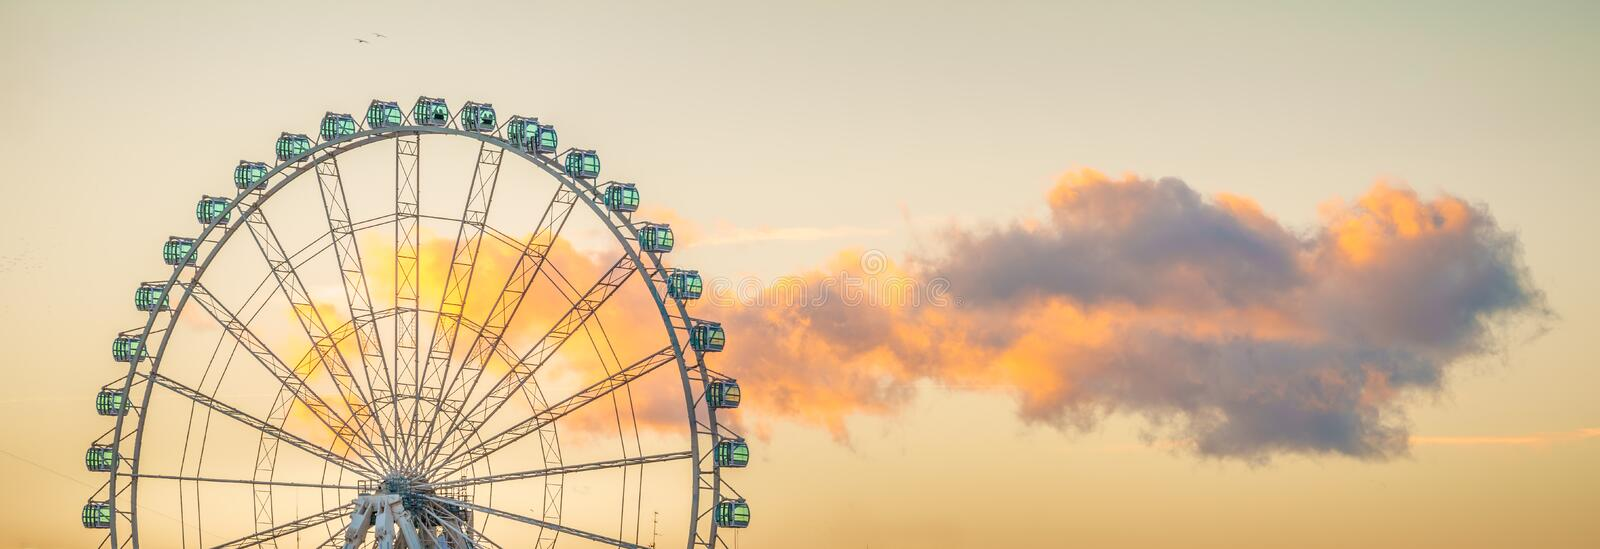 The Ferris Wheel of Malaga. A fun way of check Malaga, Spain, from above is to jump in the ferris wheel located in the marine, and enjoy the ride royalty free stock photography